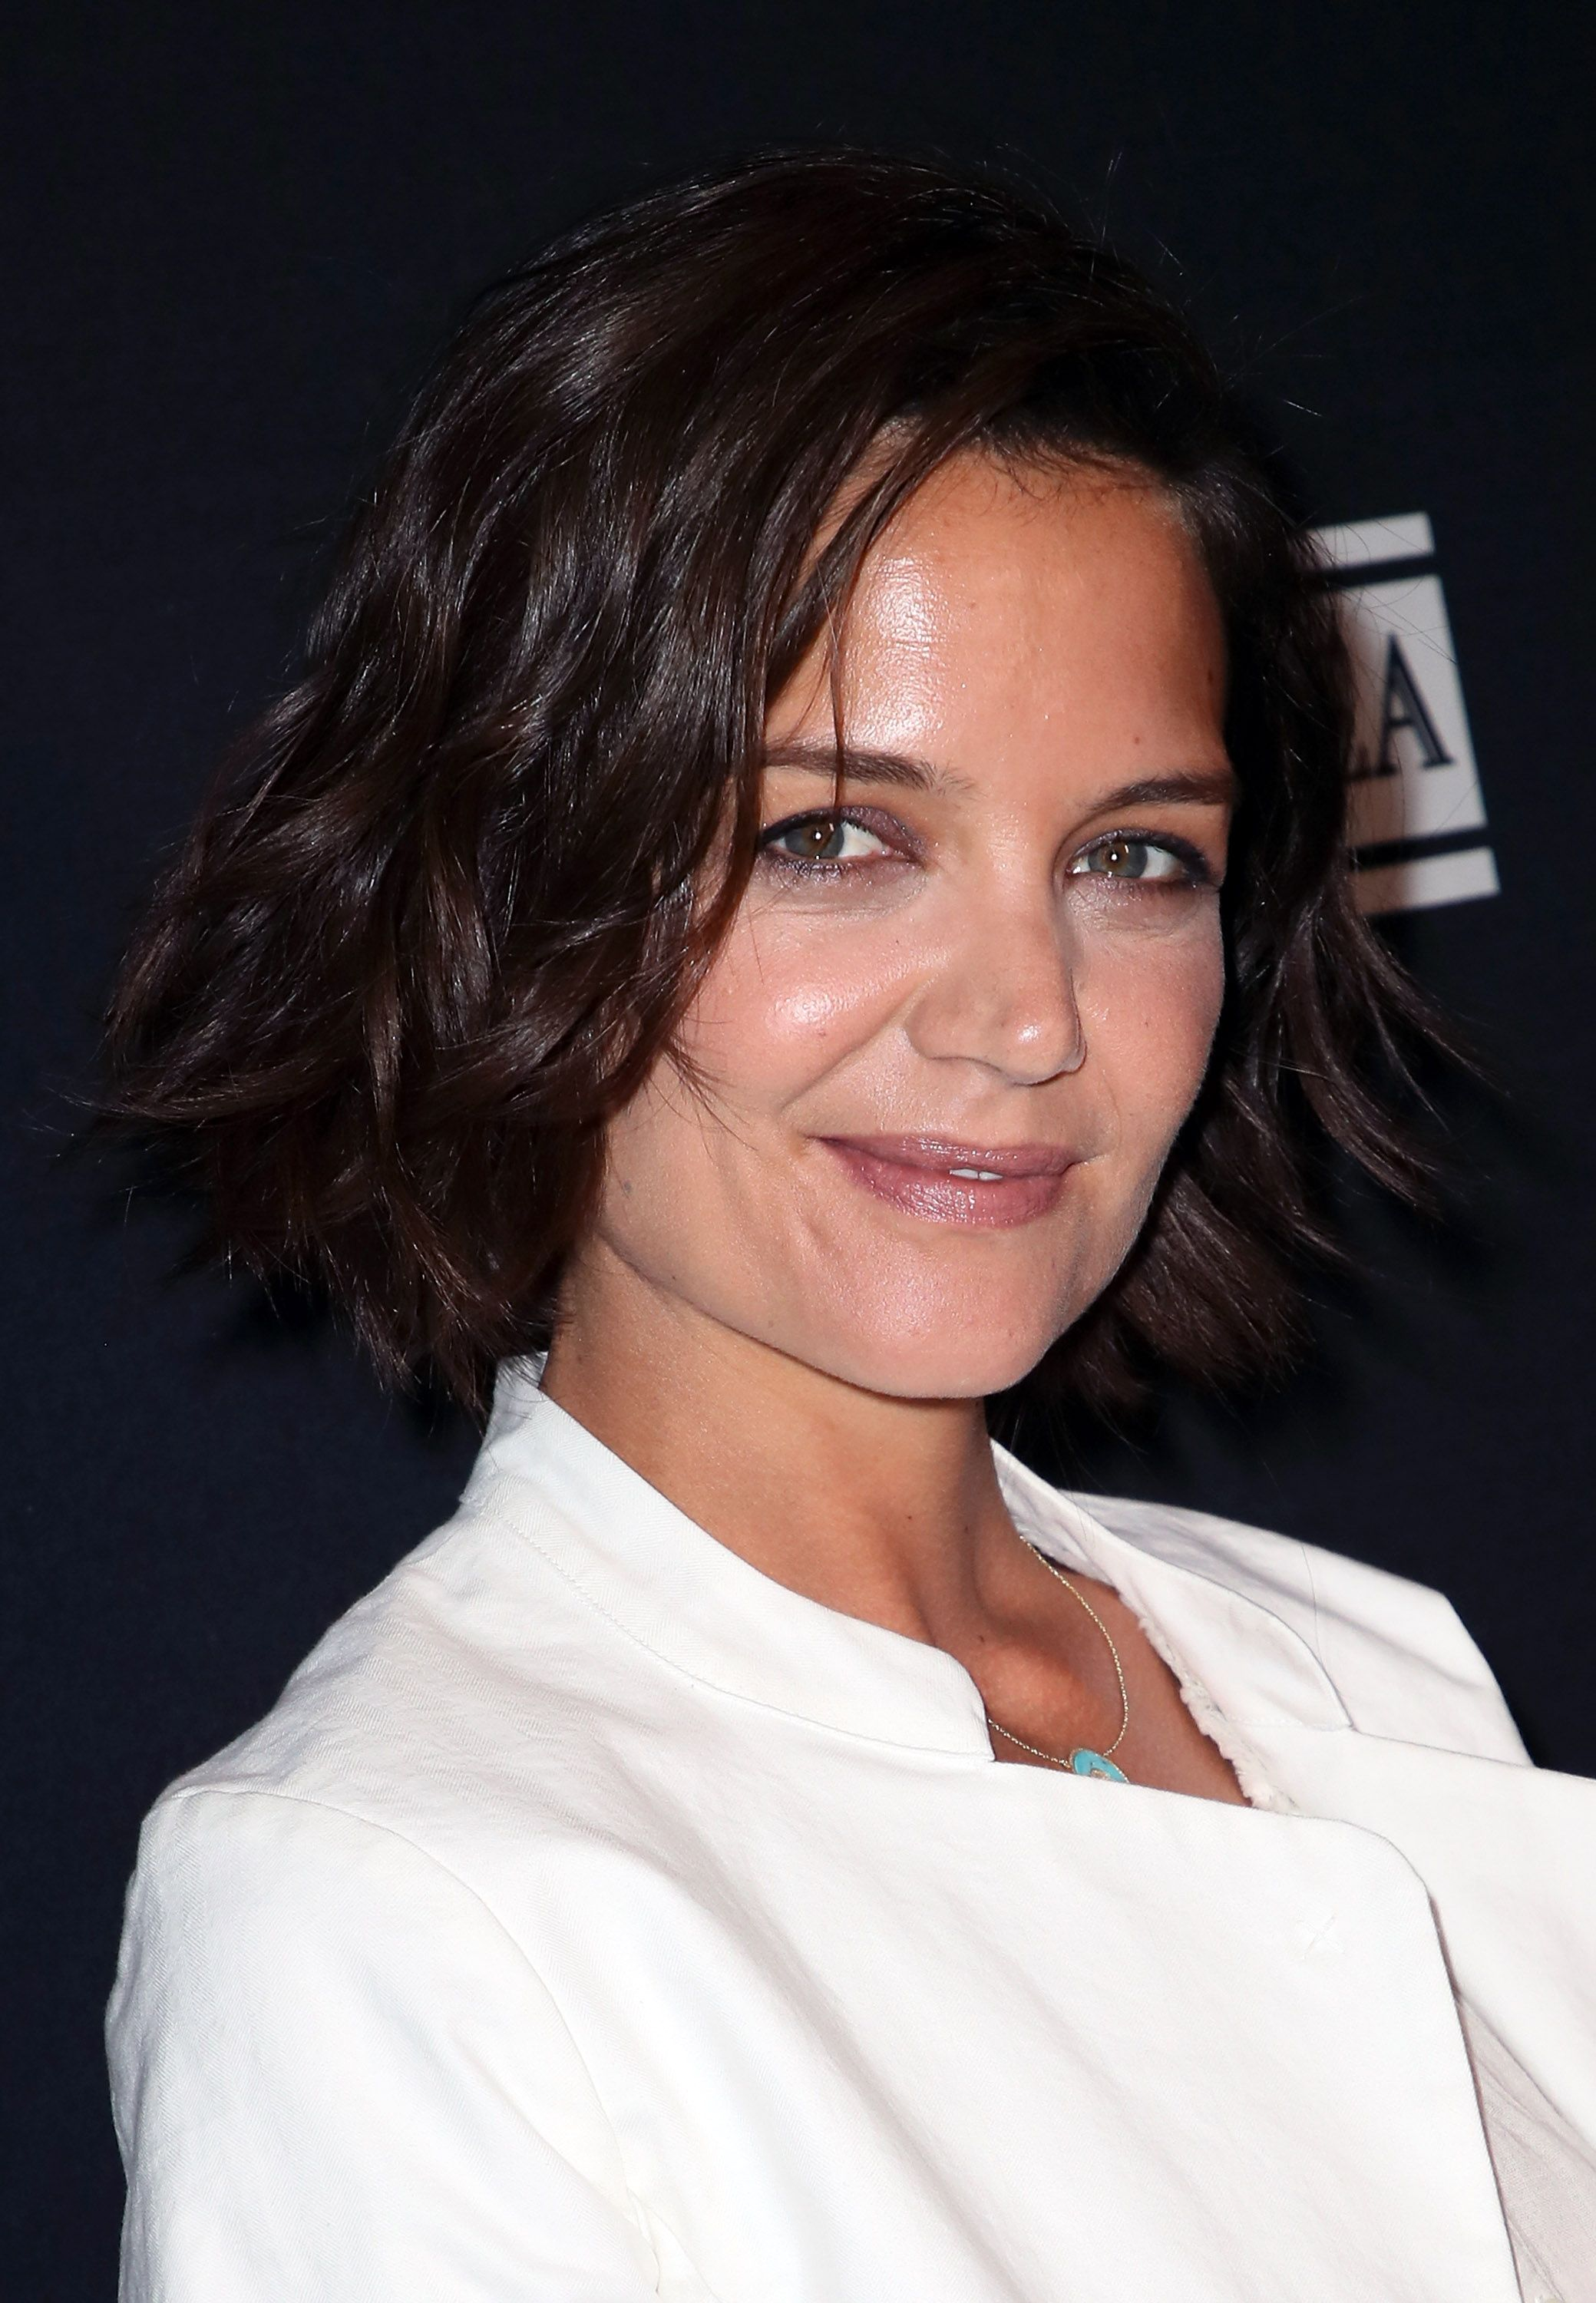 Katie Holmes Wears the Most Perfect Transitional Spring Outerwear—an Aritzia Trench Coat